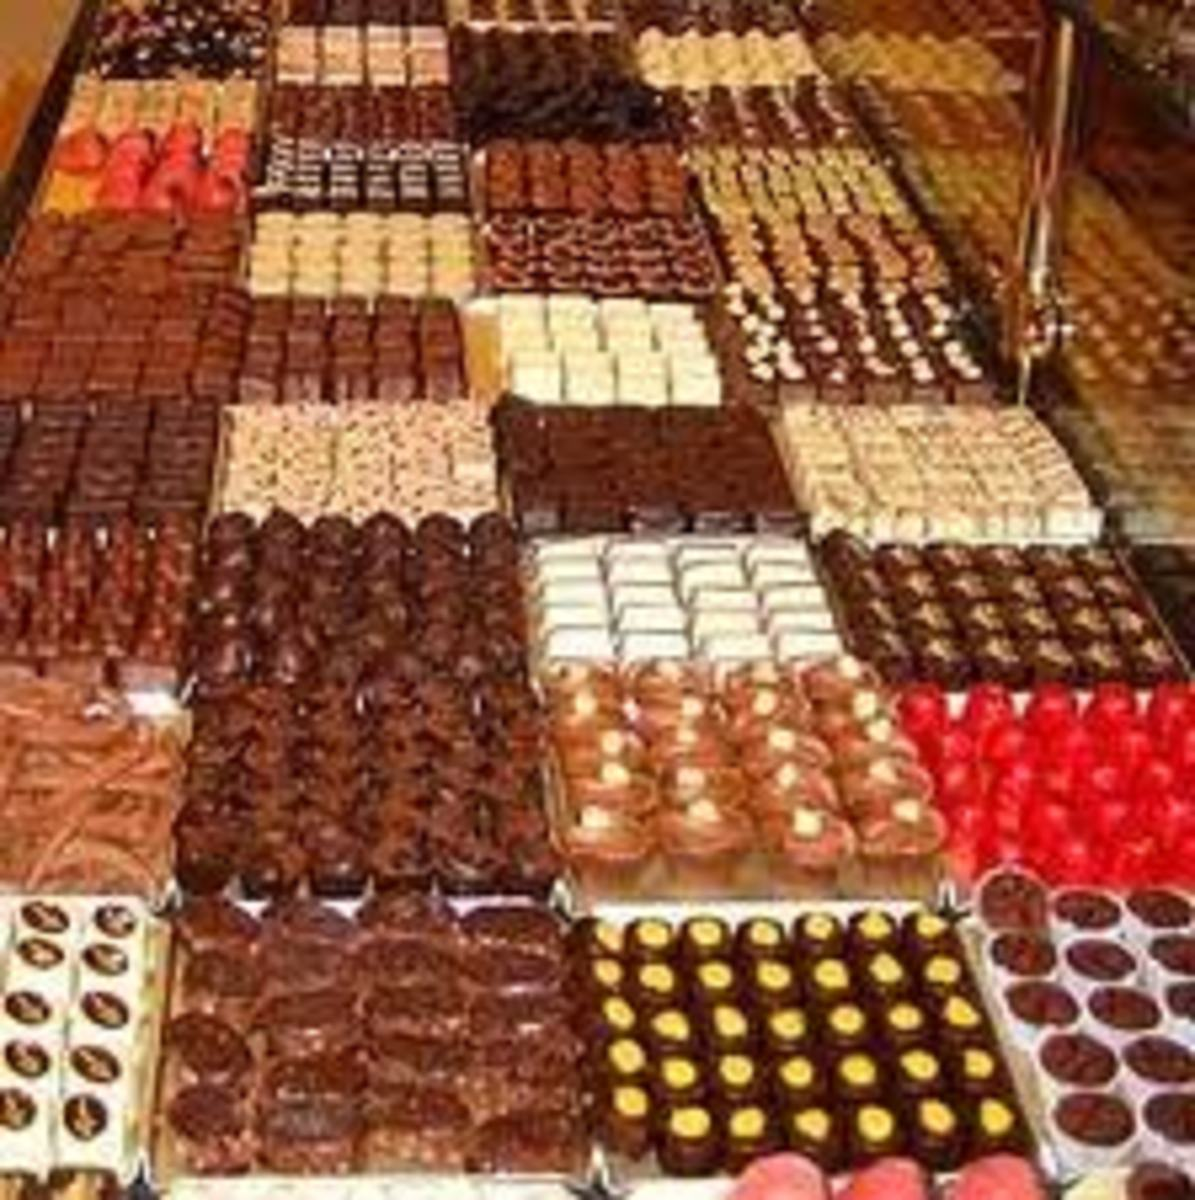 Belgian Chocolate! Yummy!